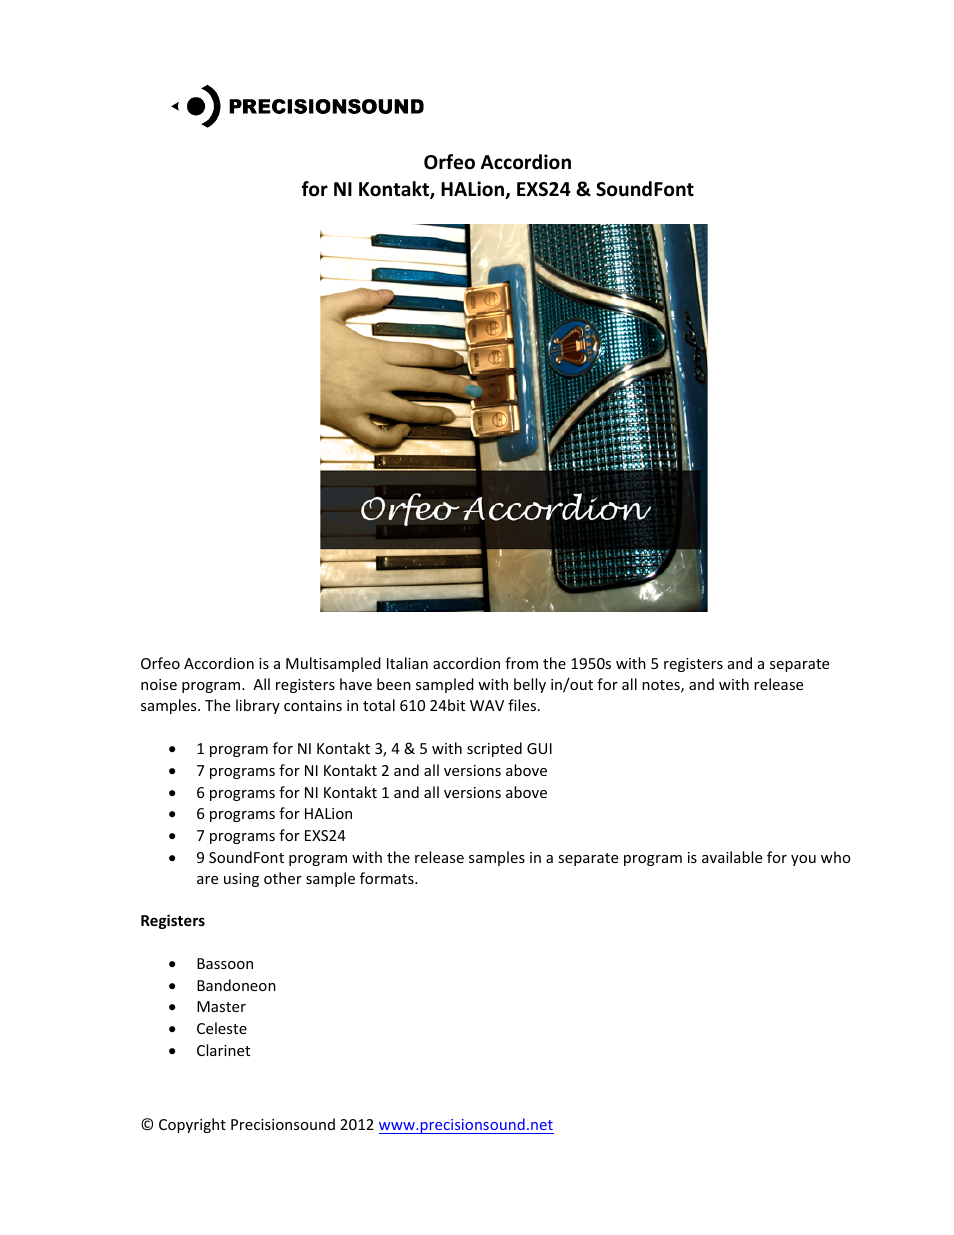 Precisionsound Orfeo Accordion User Manual | 4 pages